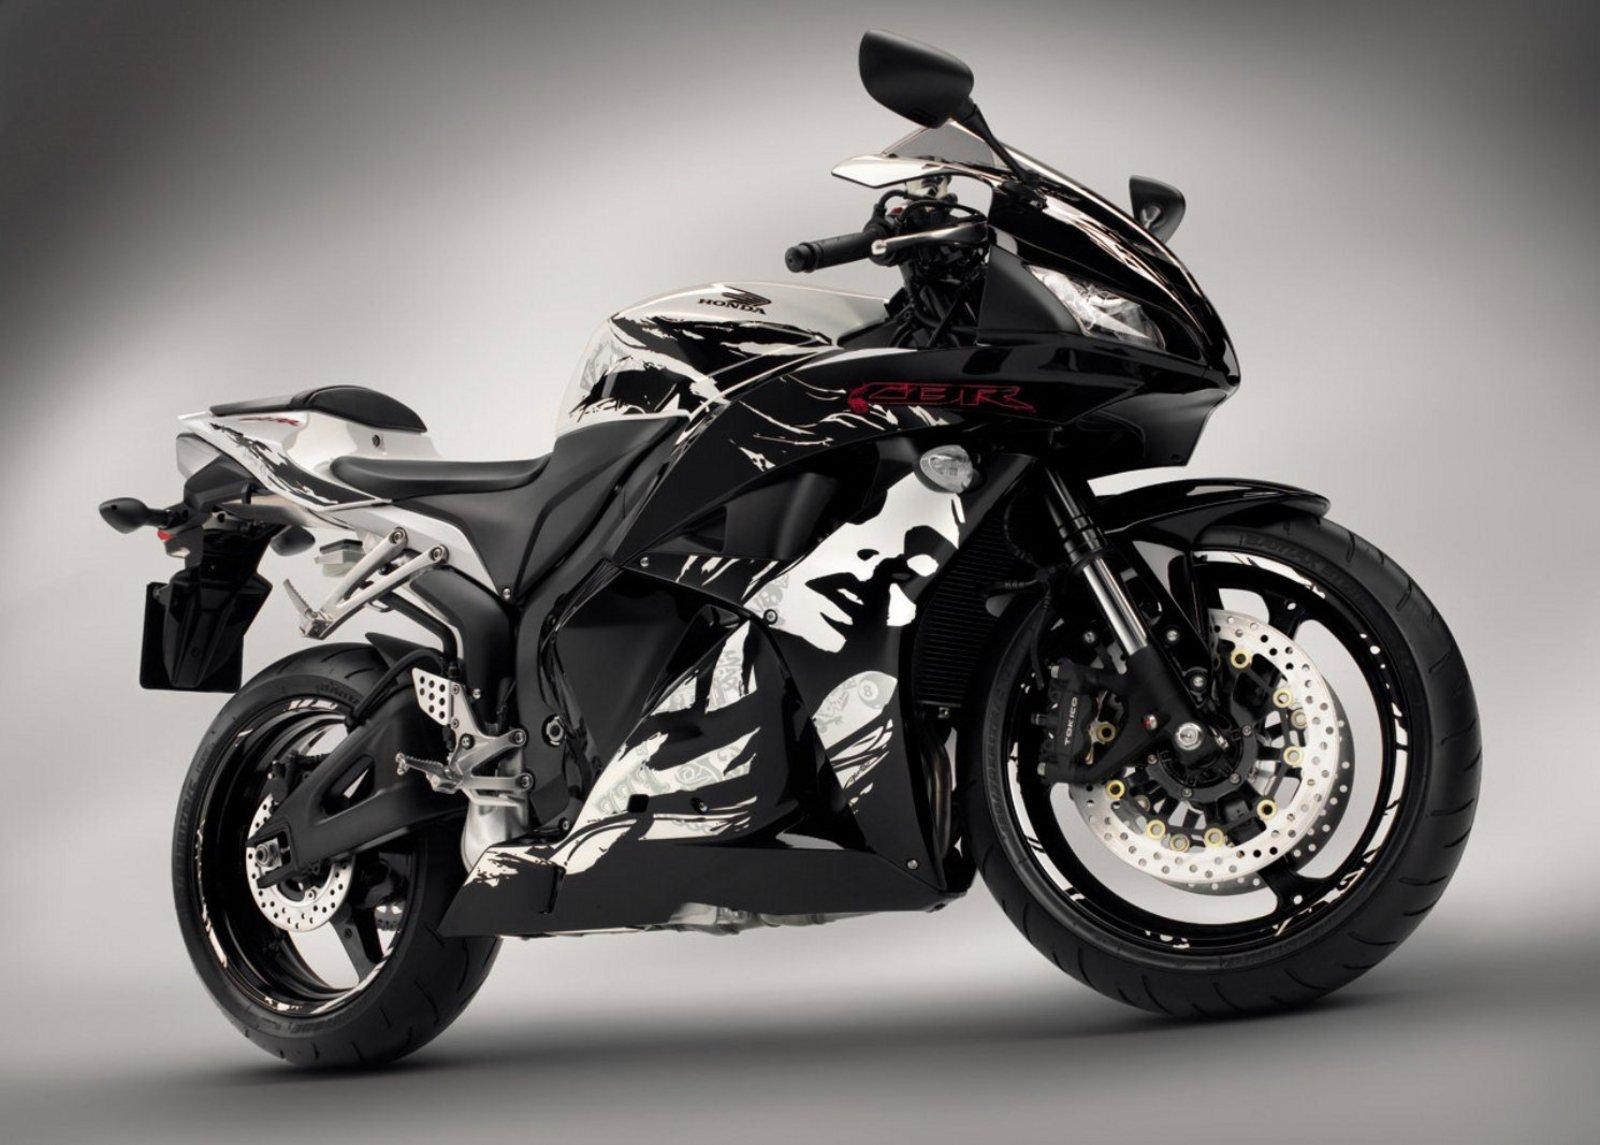 Honda Cbr Reviews Specs Prices Photos And Videos Top Speed Two Brothers Cbr1000rr 2012 2014 Silver Series Slip On Exhaust System With M 2 Carbon Fiber Canister Cbr600rr